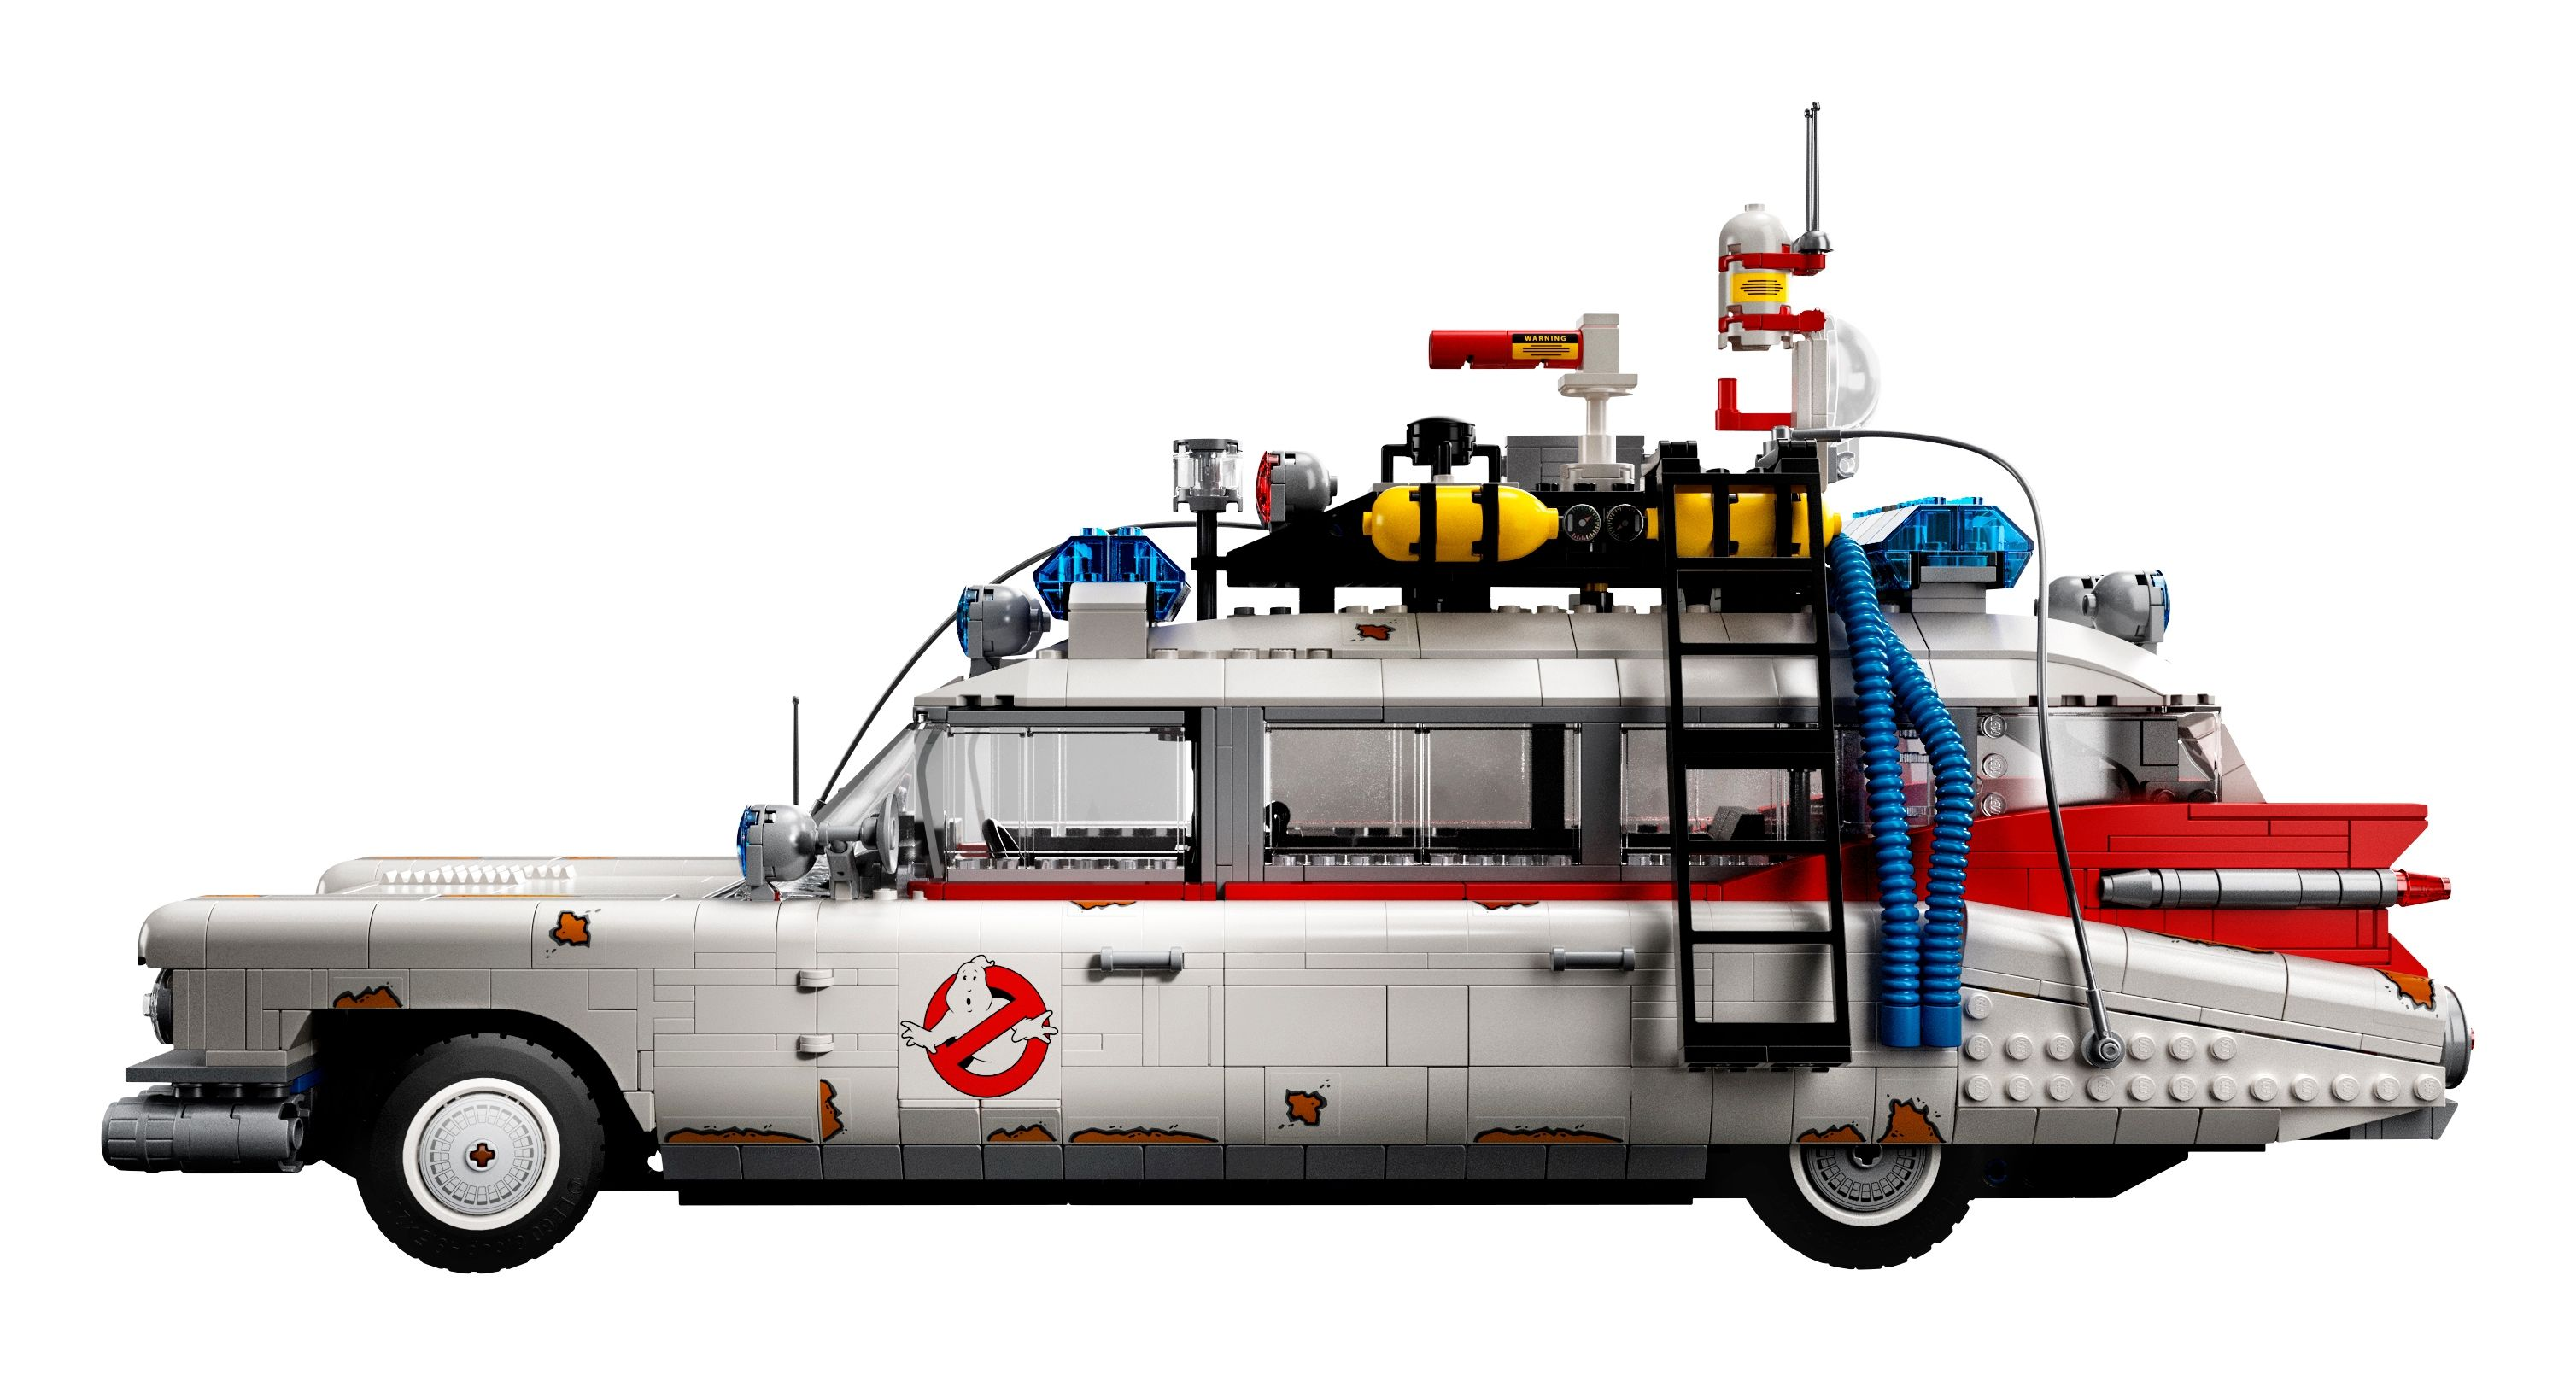 LEGO Advanced Models 10274 Ghostbusters™ ECTO-1 LEGO_10274_alt3.jpg